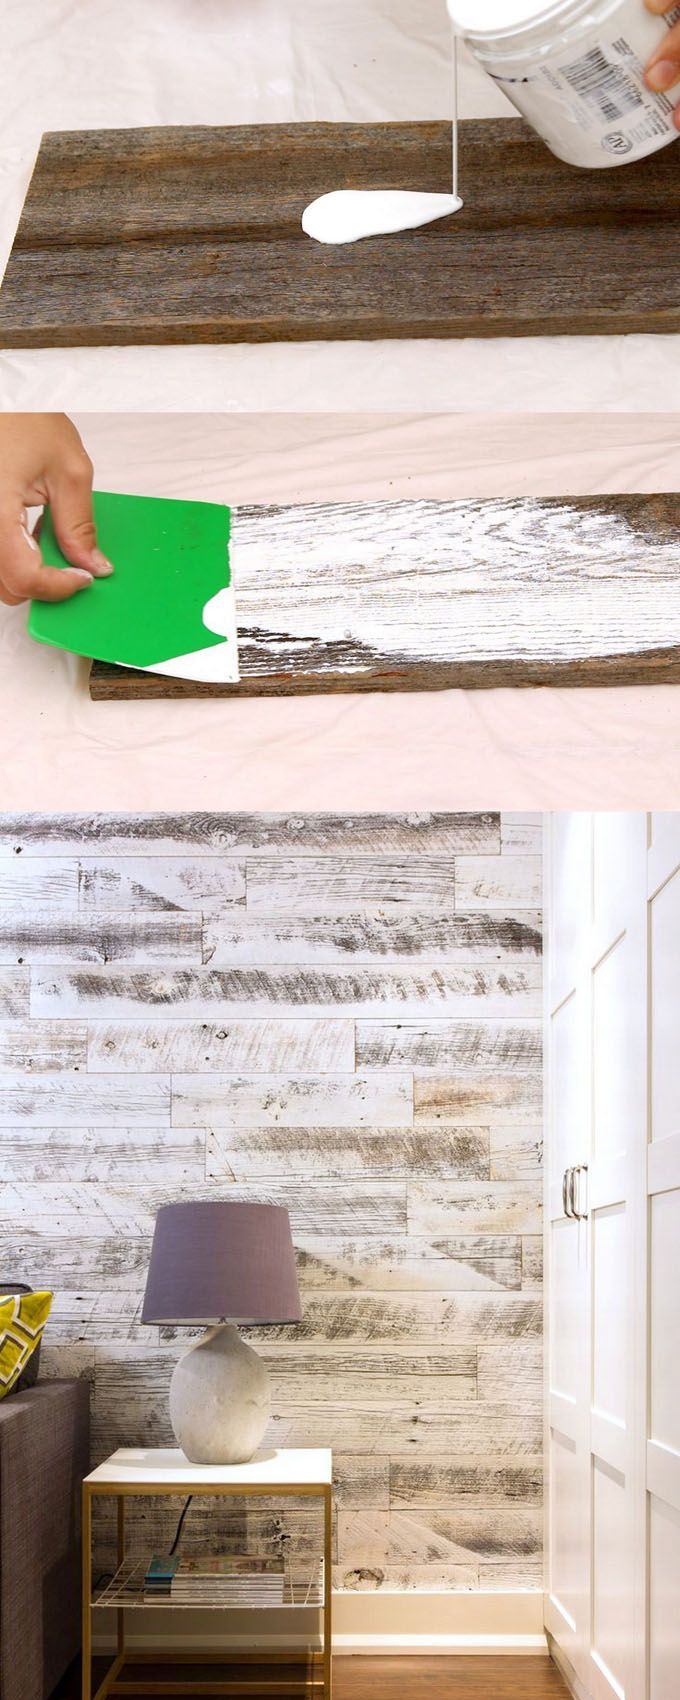 Ultimate guide + video tutorials on how to whitewash wood & create beautiful whitewashed floors, walls and furniture using pine, pallet or reclaimed wood. | apieceofrainbow.com | wood | wardrobe | walls | interior design